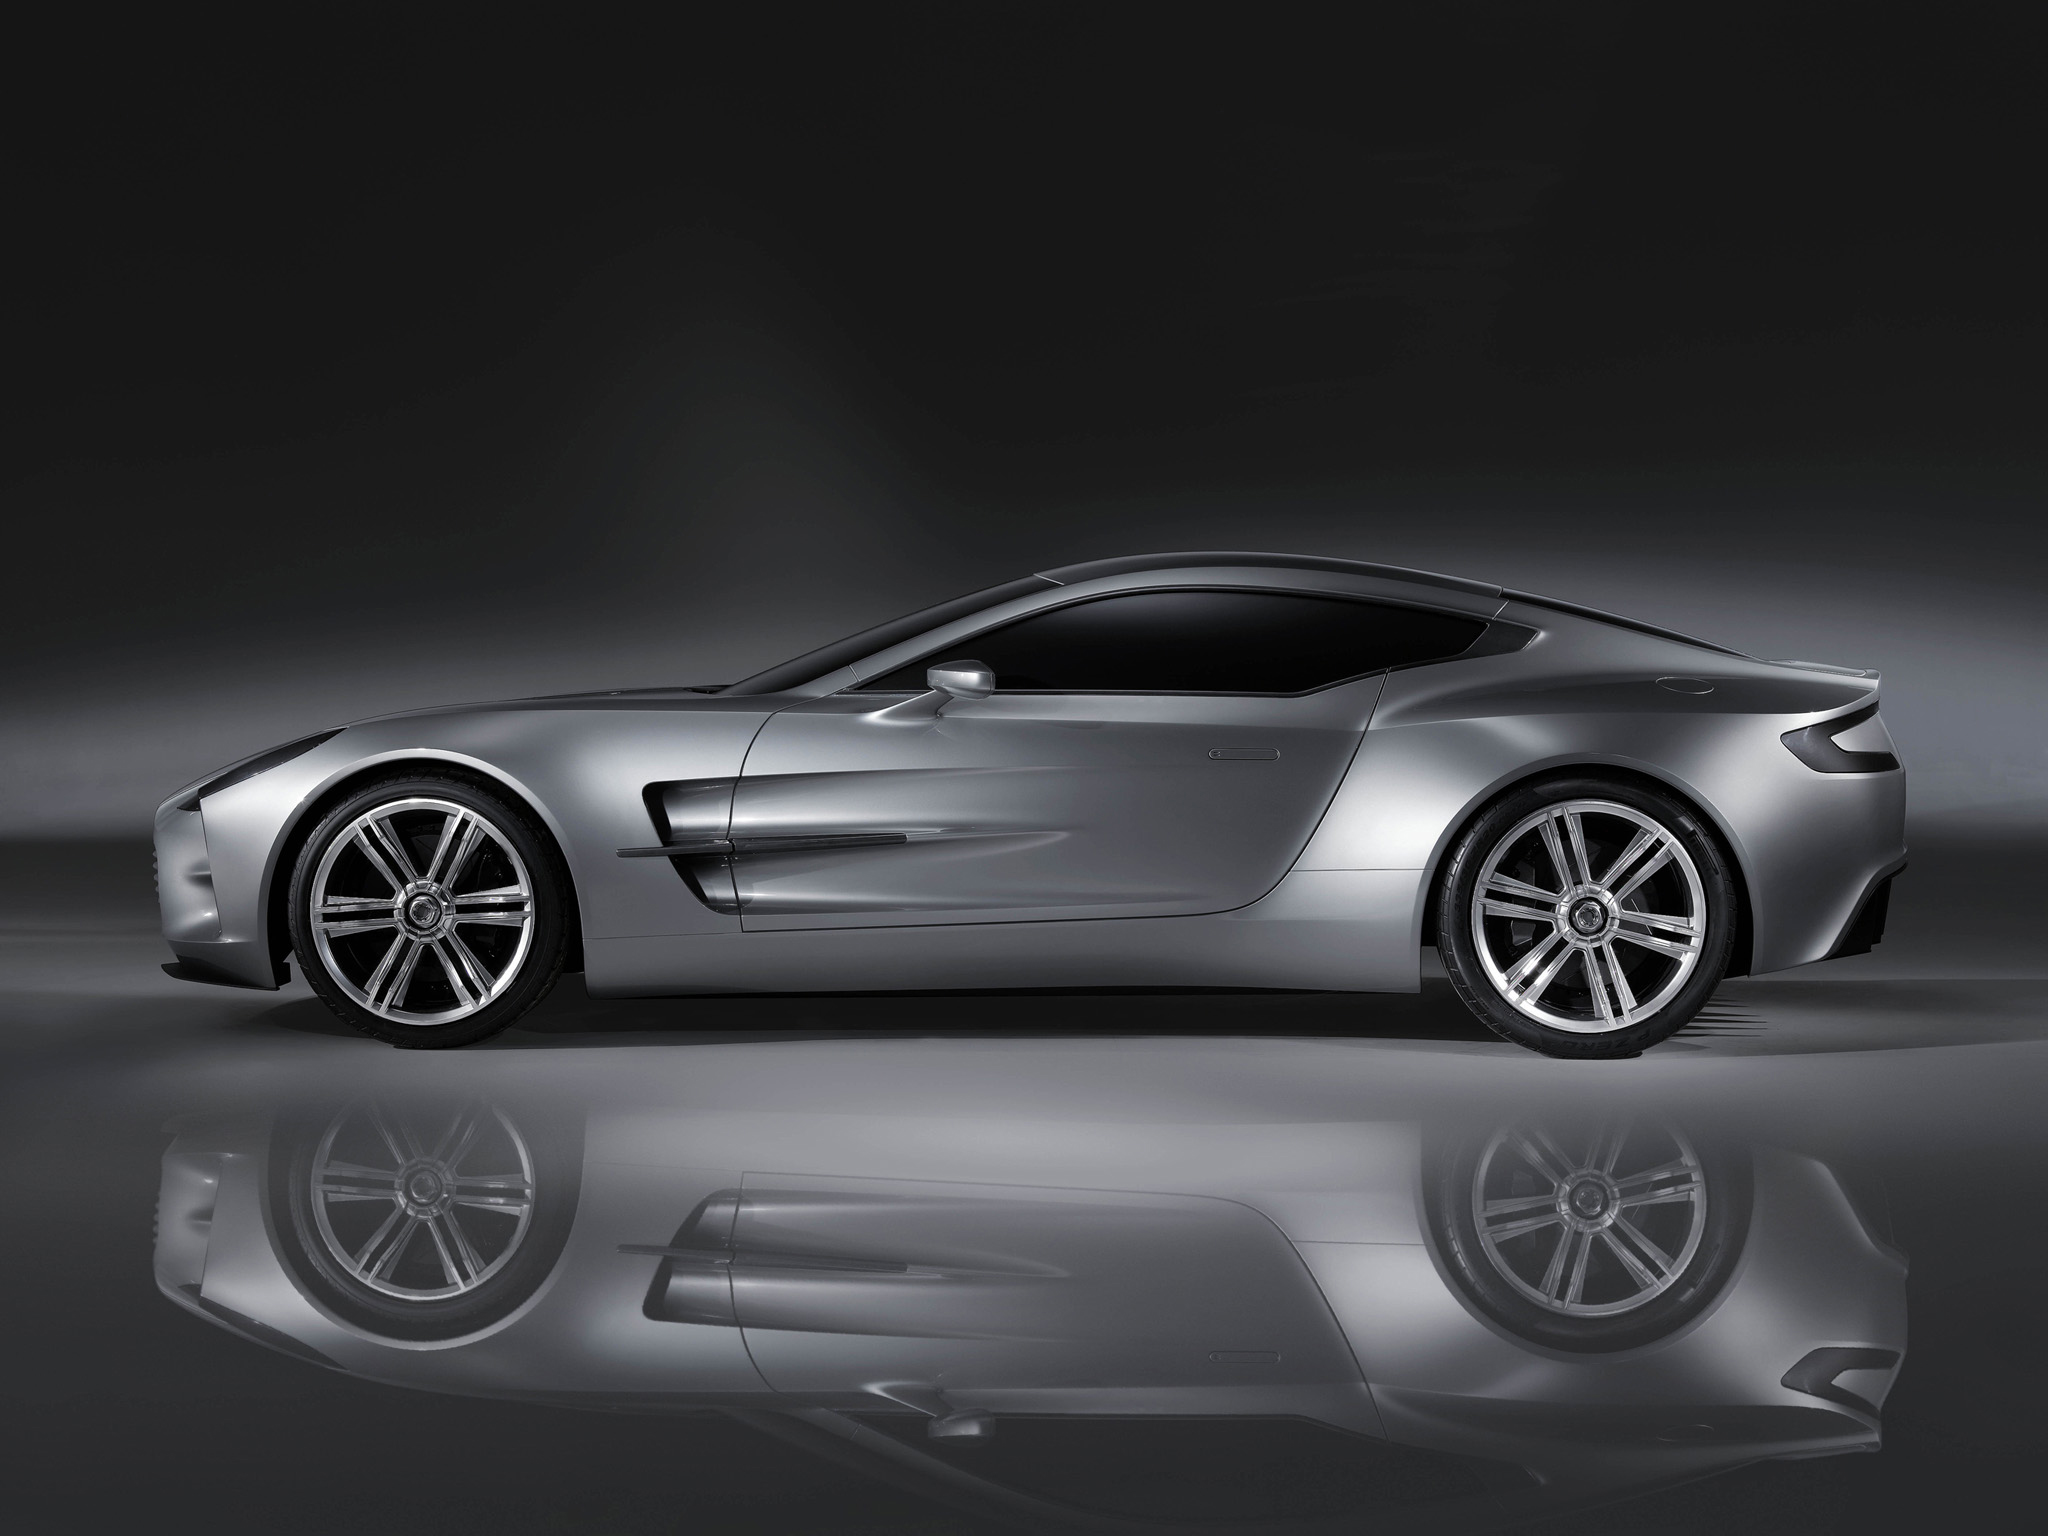 Aston Martin One 77 Concept Wallpapers Car wallpapers HD 2048x1536